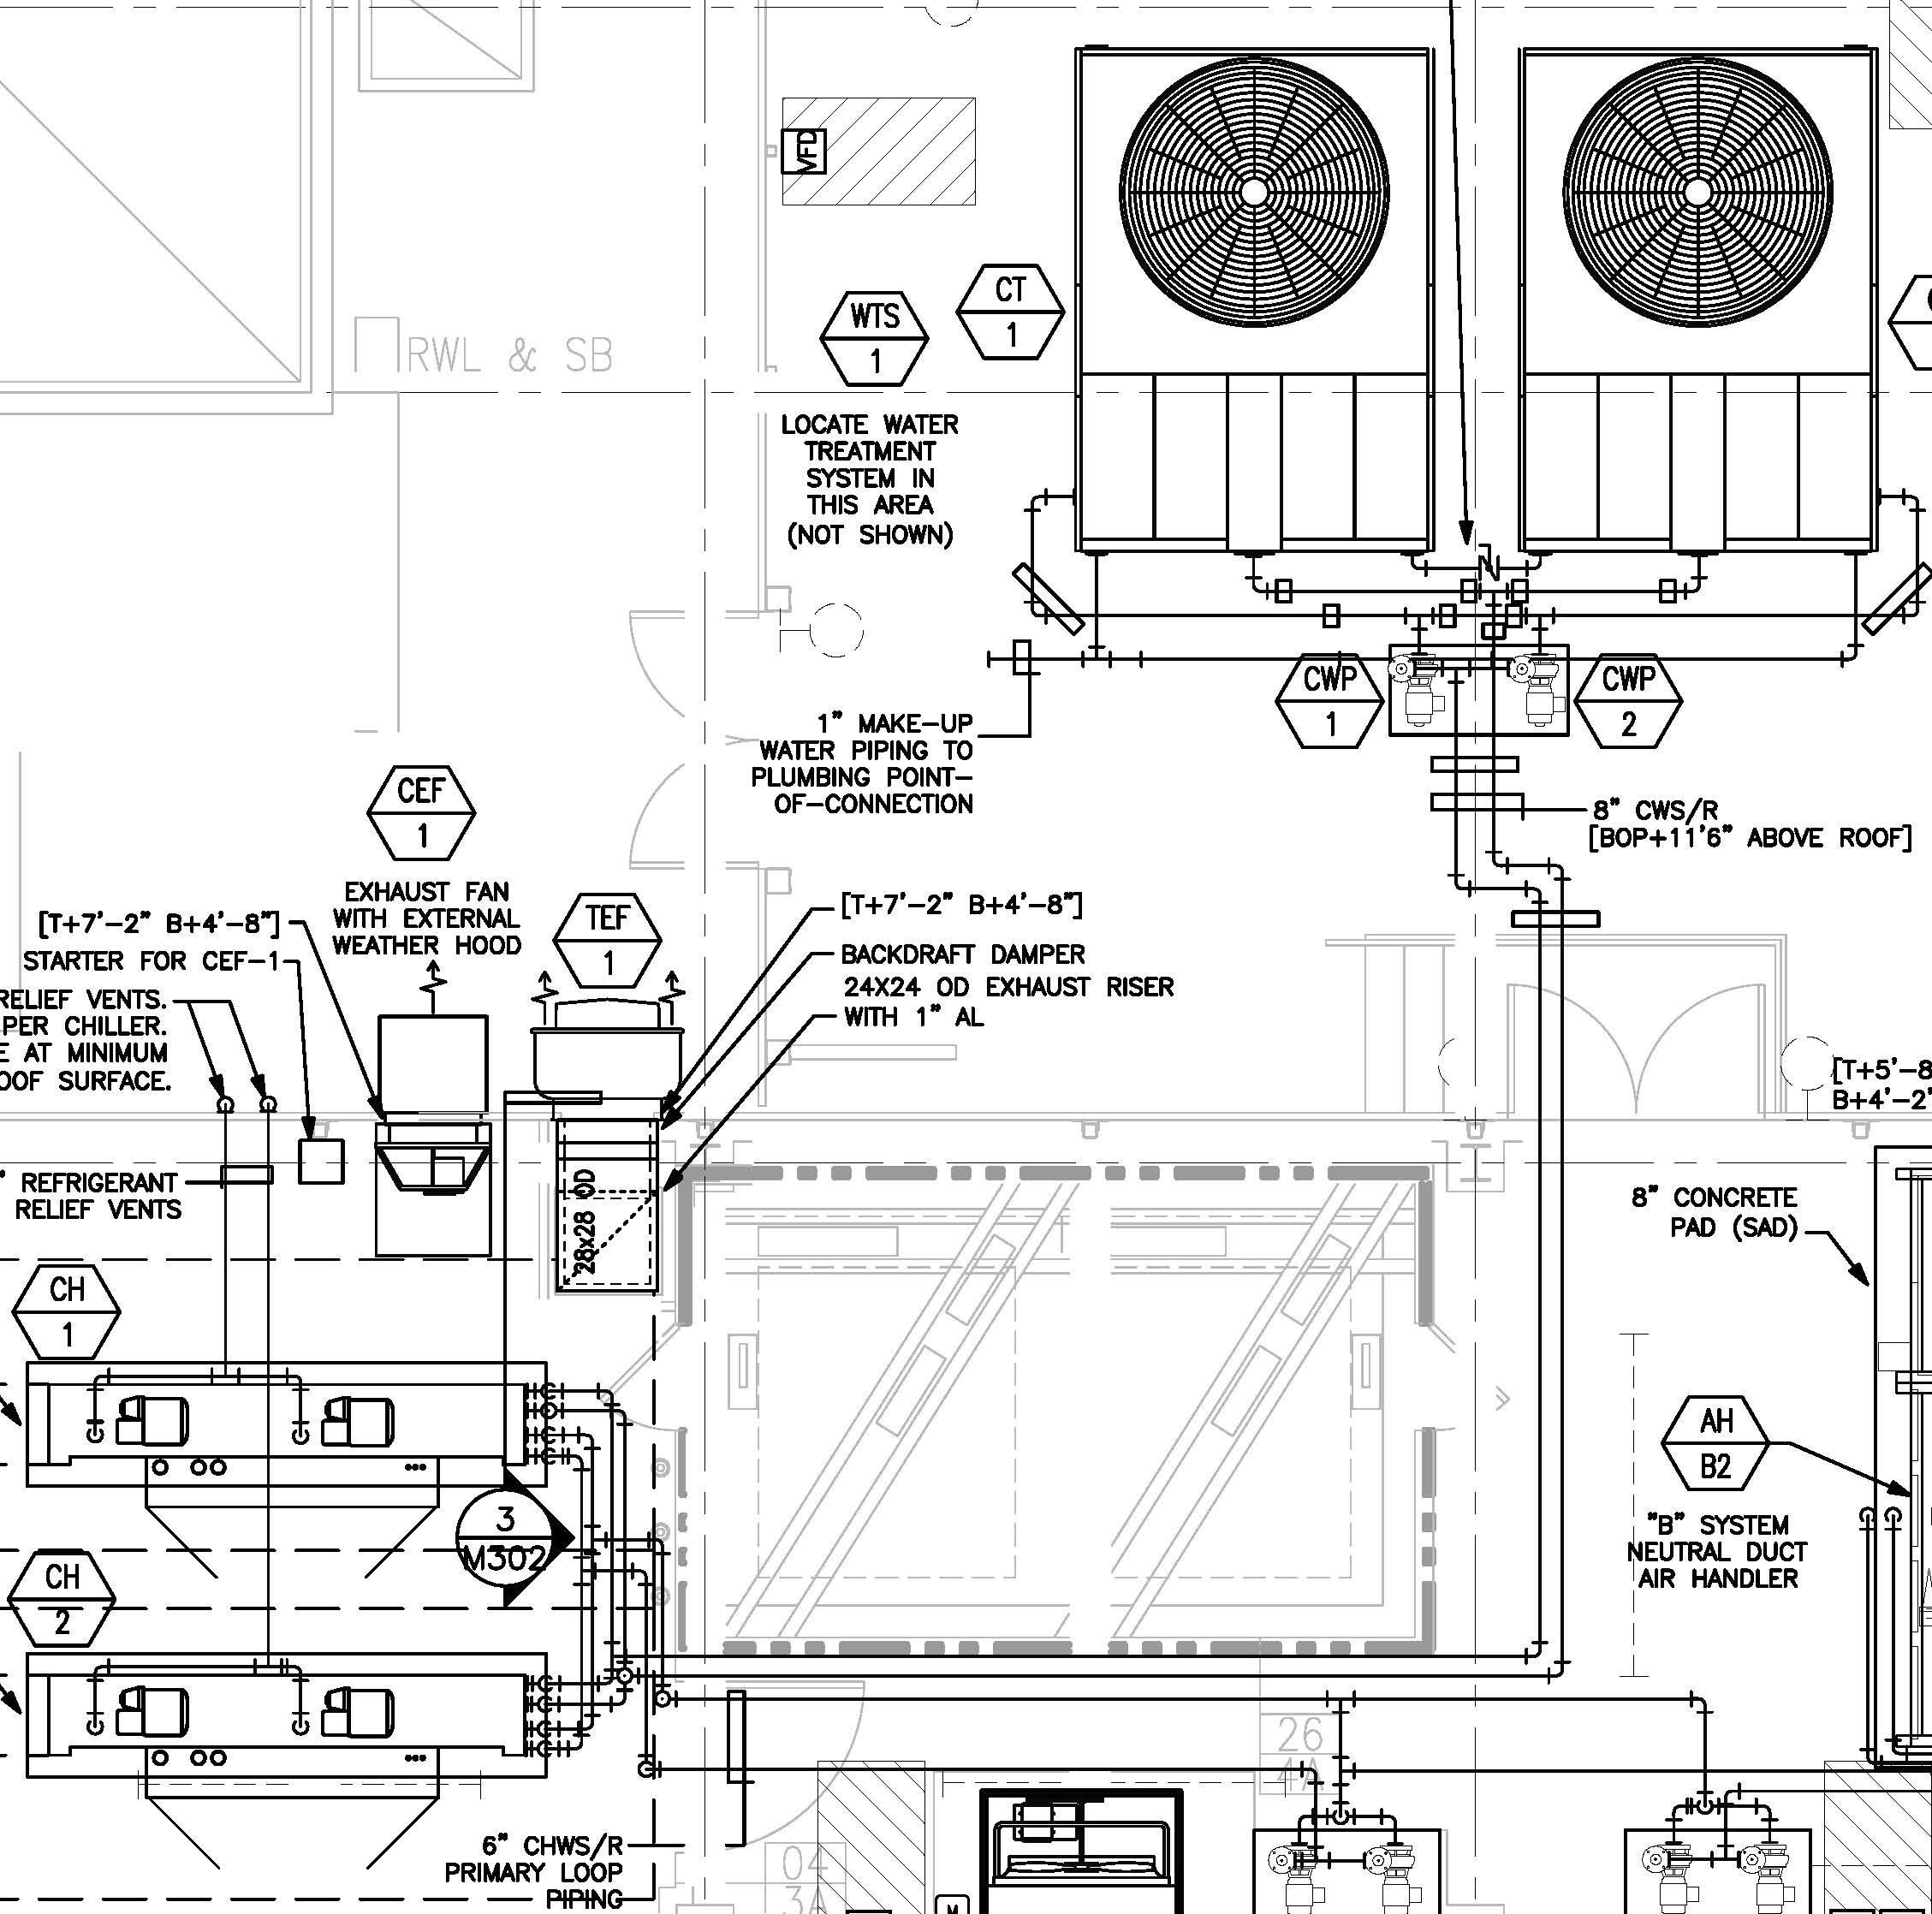 Water Cooled Engine Diagram Chiller Wiring Diagram Wiring Diagram for You Of Water Cooled Engine Diagram